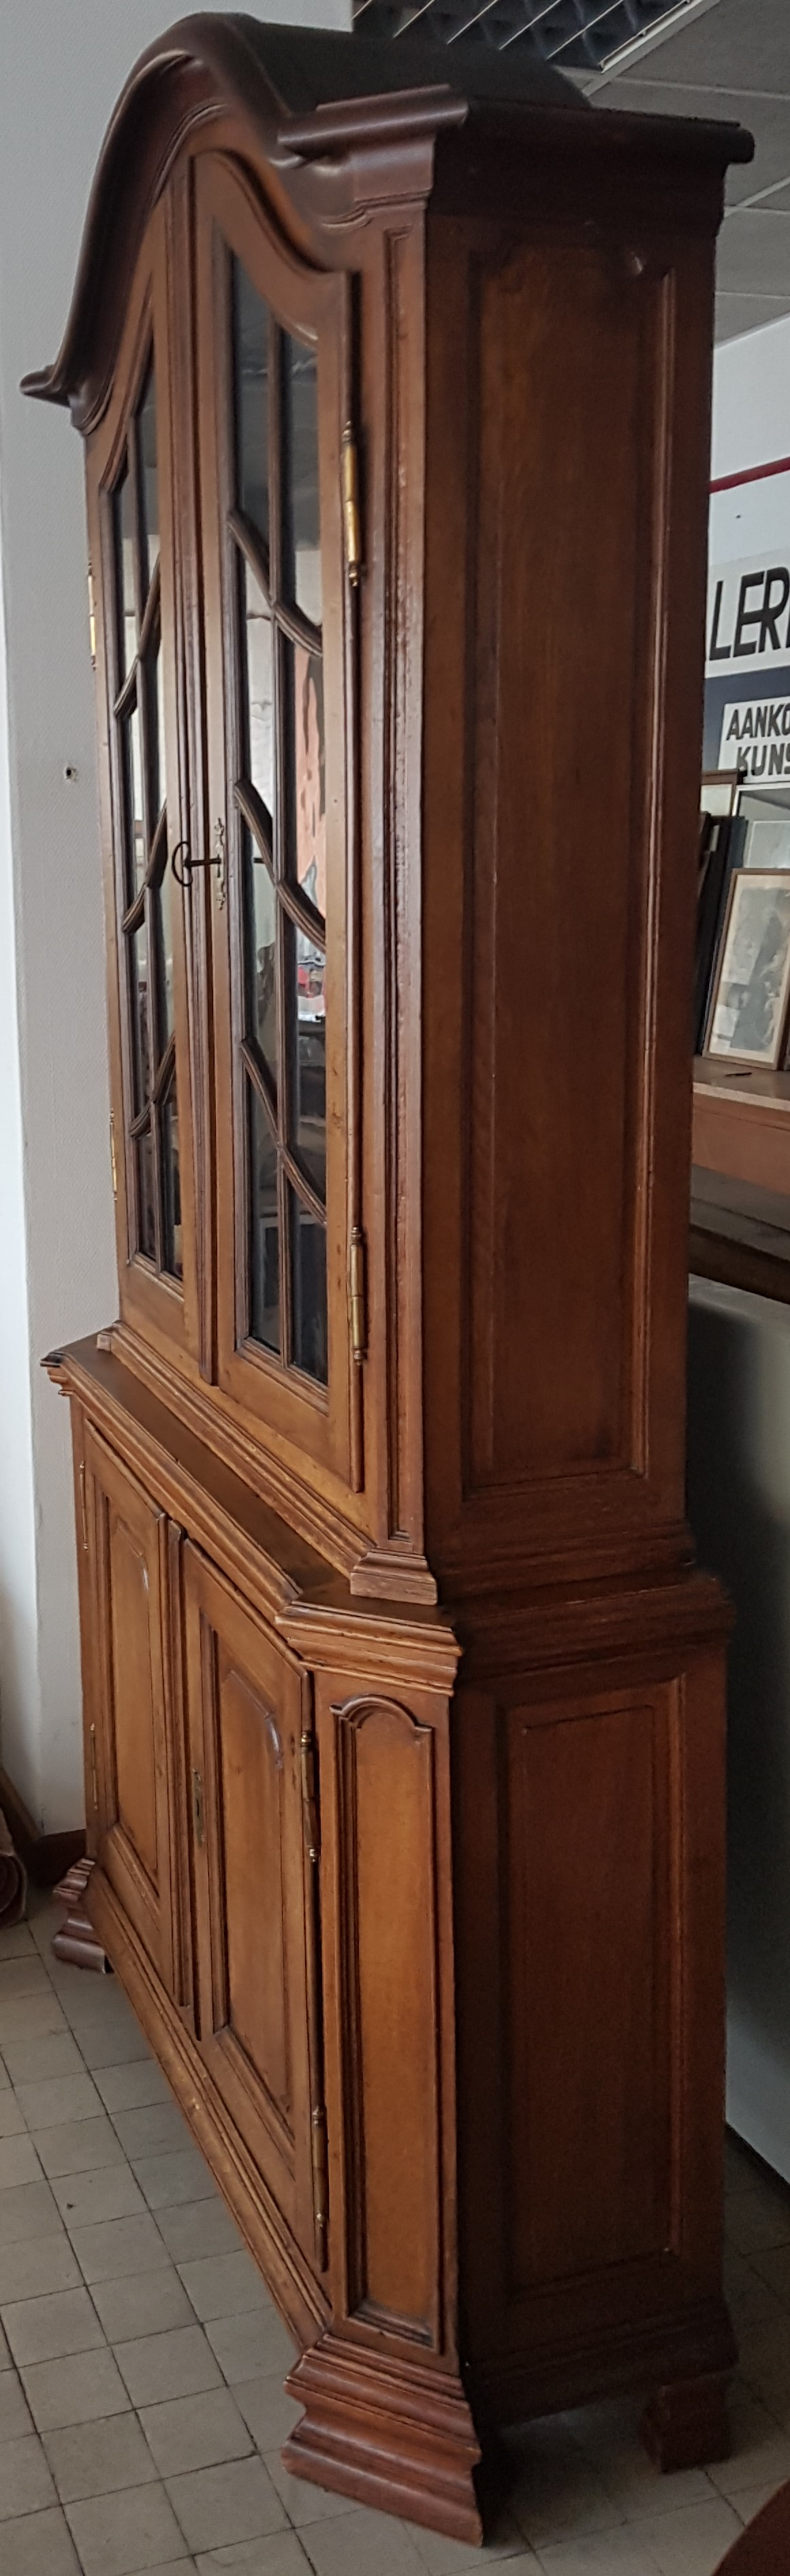 Flemish oak display cabinet — <p>Side view, showing the narrow depth</p>